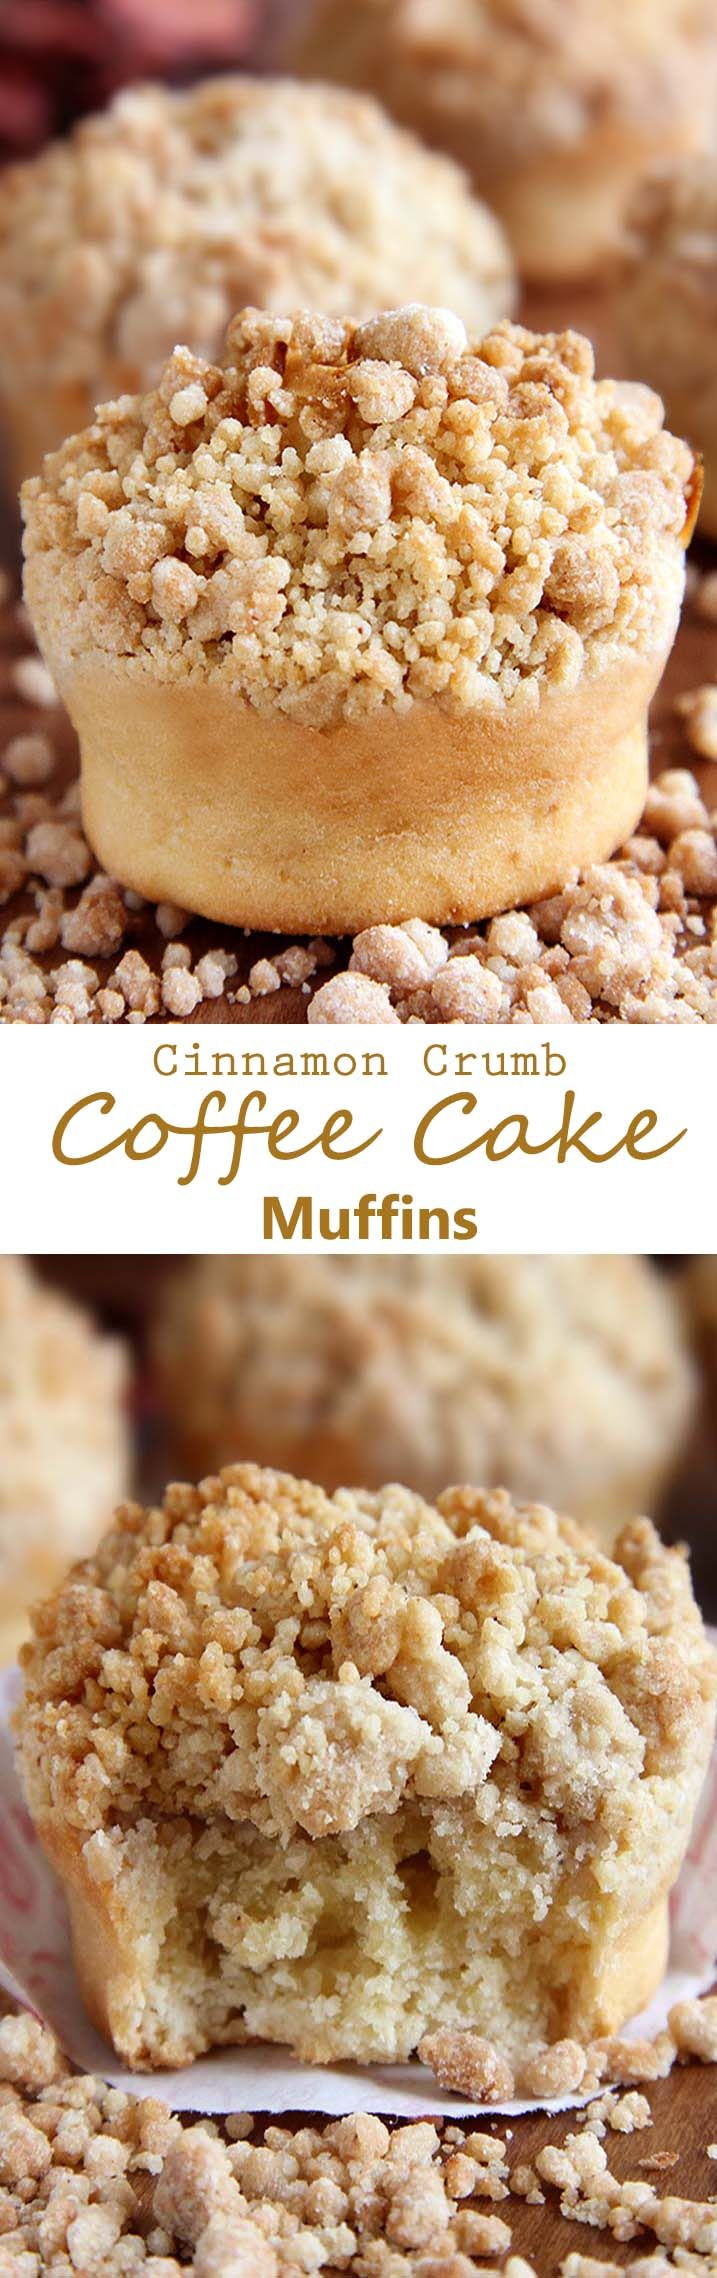 Cinnamon Crumb Coffe Cake Muffins - Gather your ingredients. It's a very humble coffee cake. Crumb topping is the star!